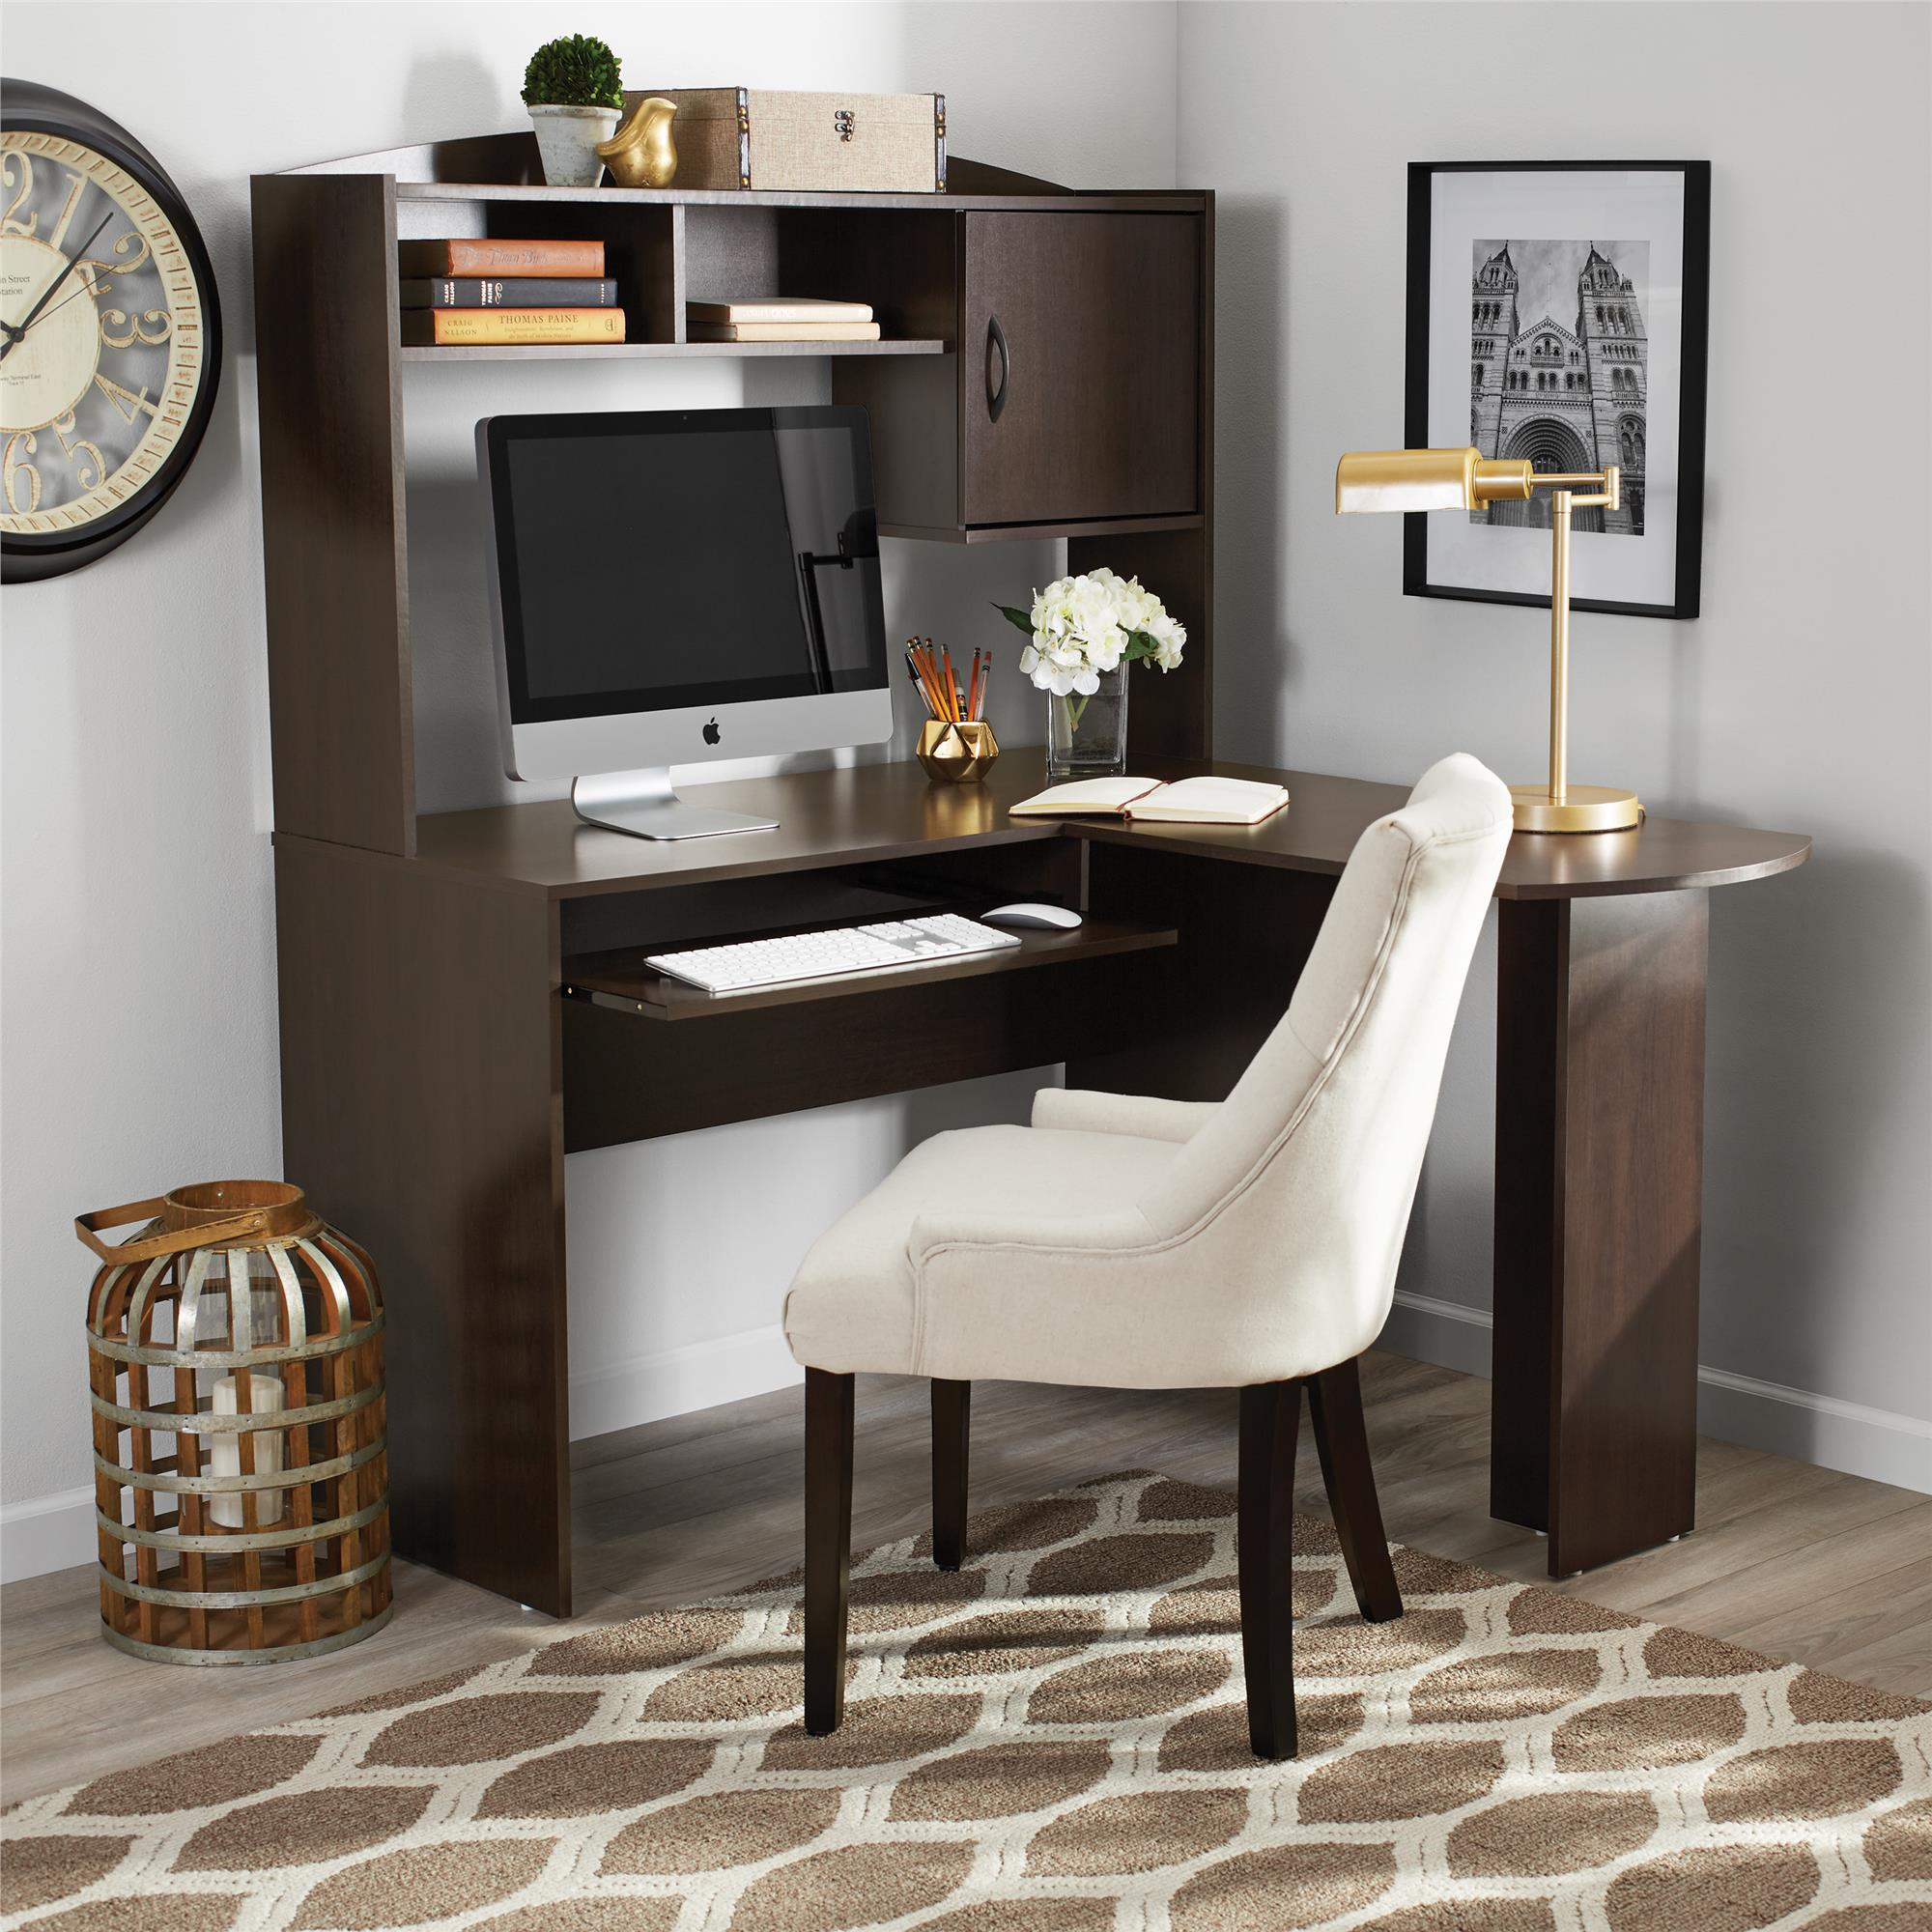 Mainstays L-shaped Desk In Espresso Color